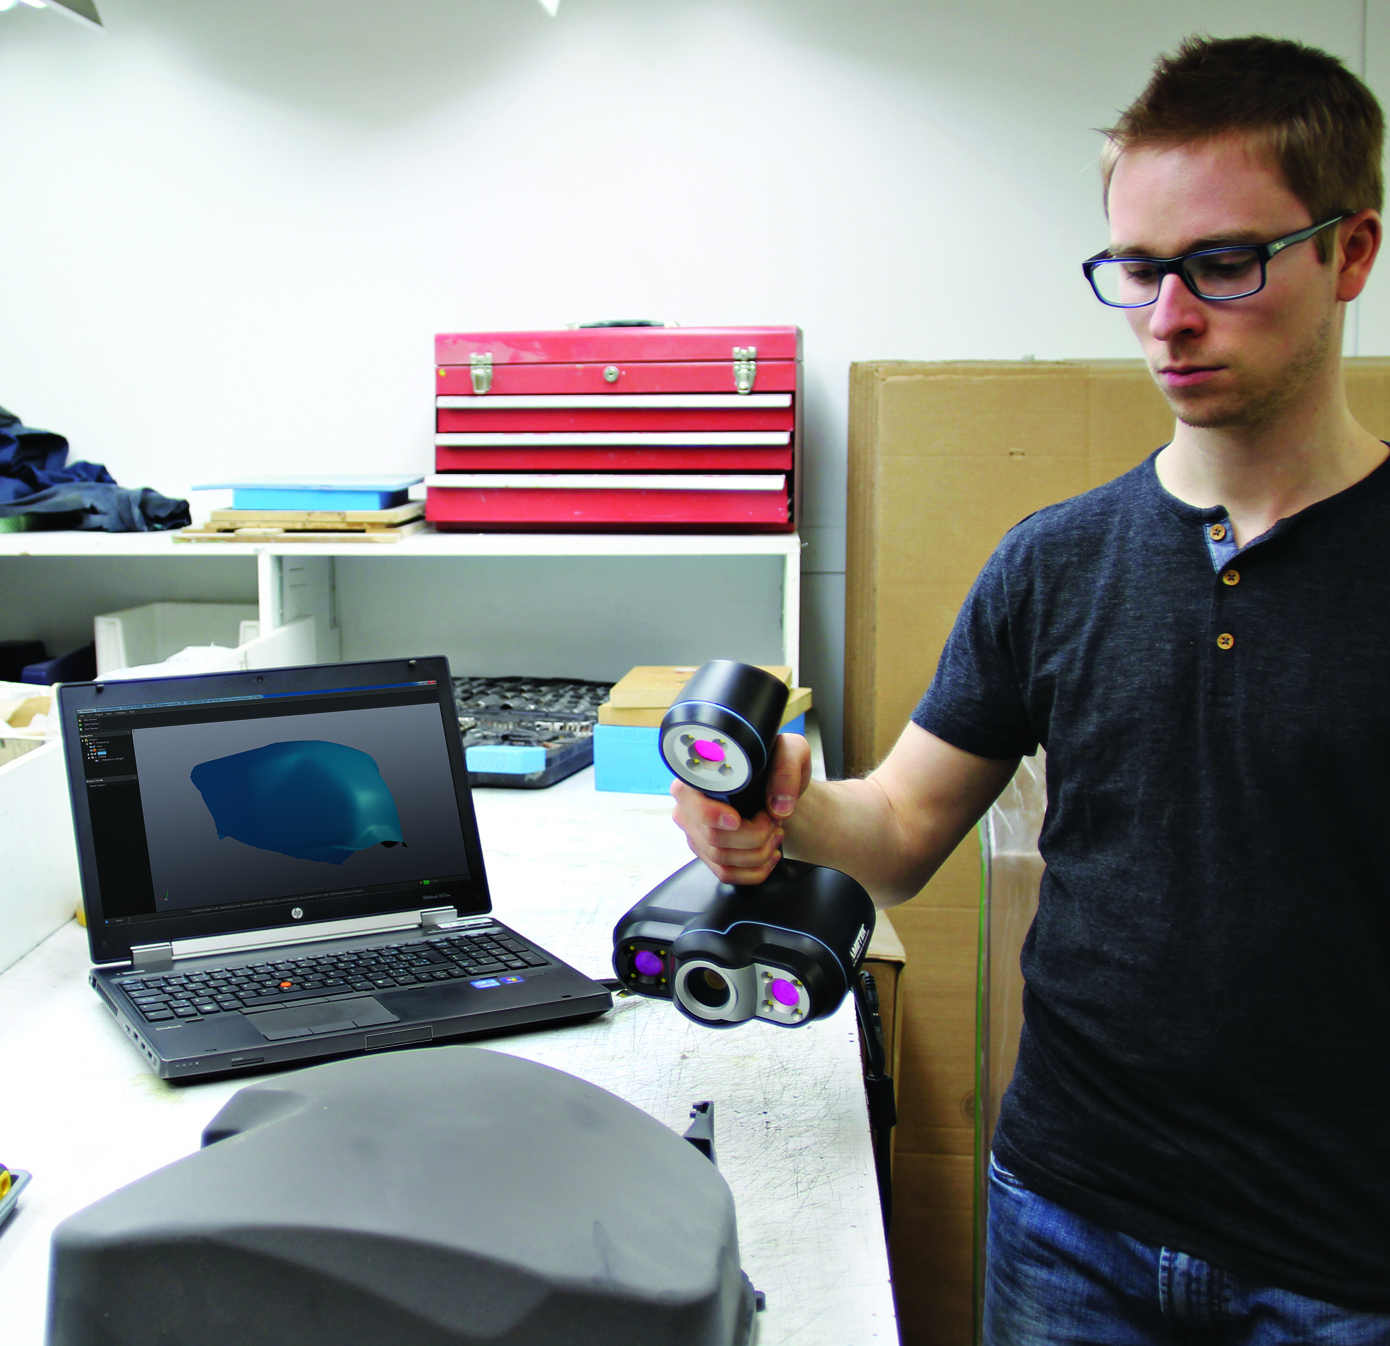 The Go!SCAN 3D™ product line offers our easiest portable 3D scanning experience, providing fast and reliable measurement